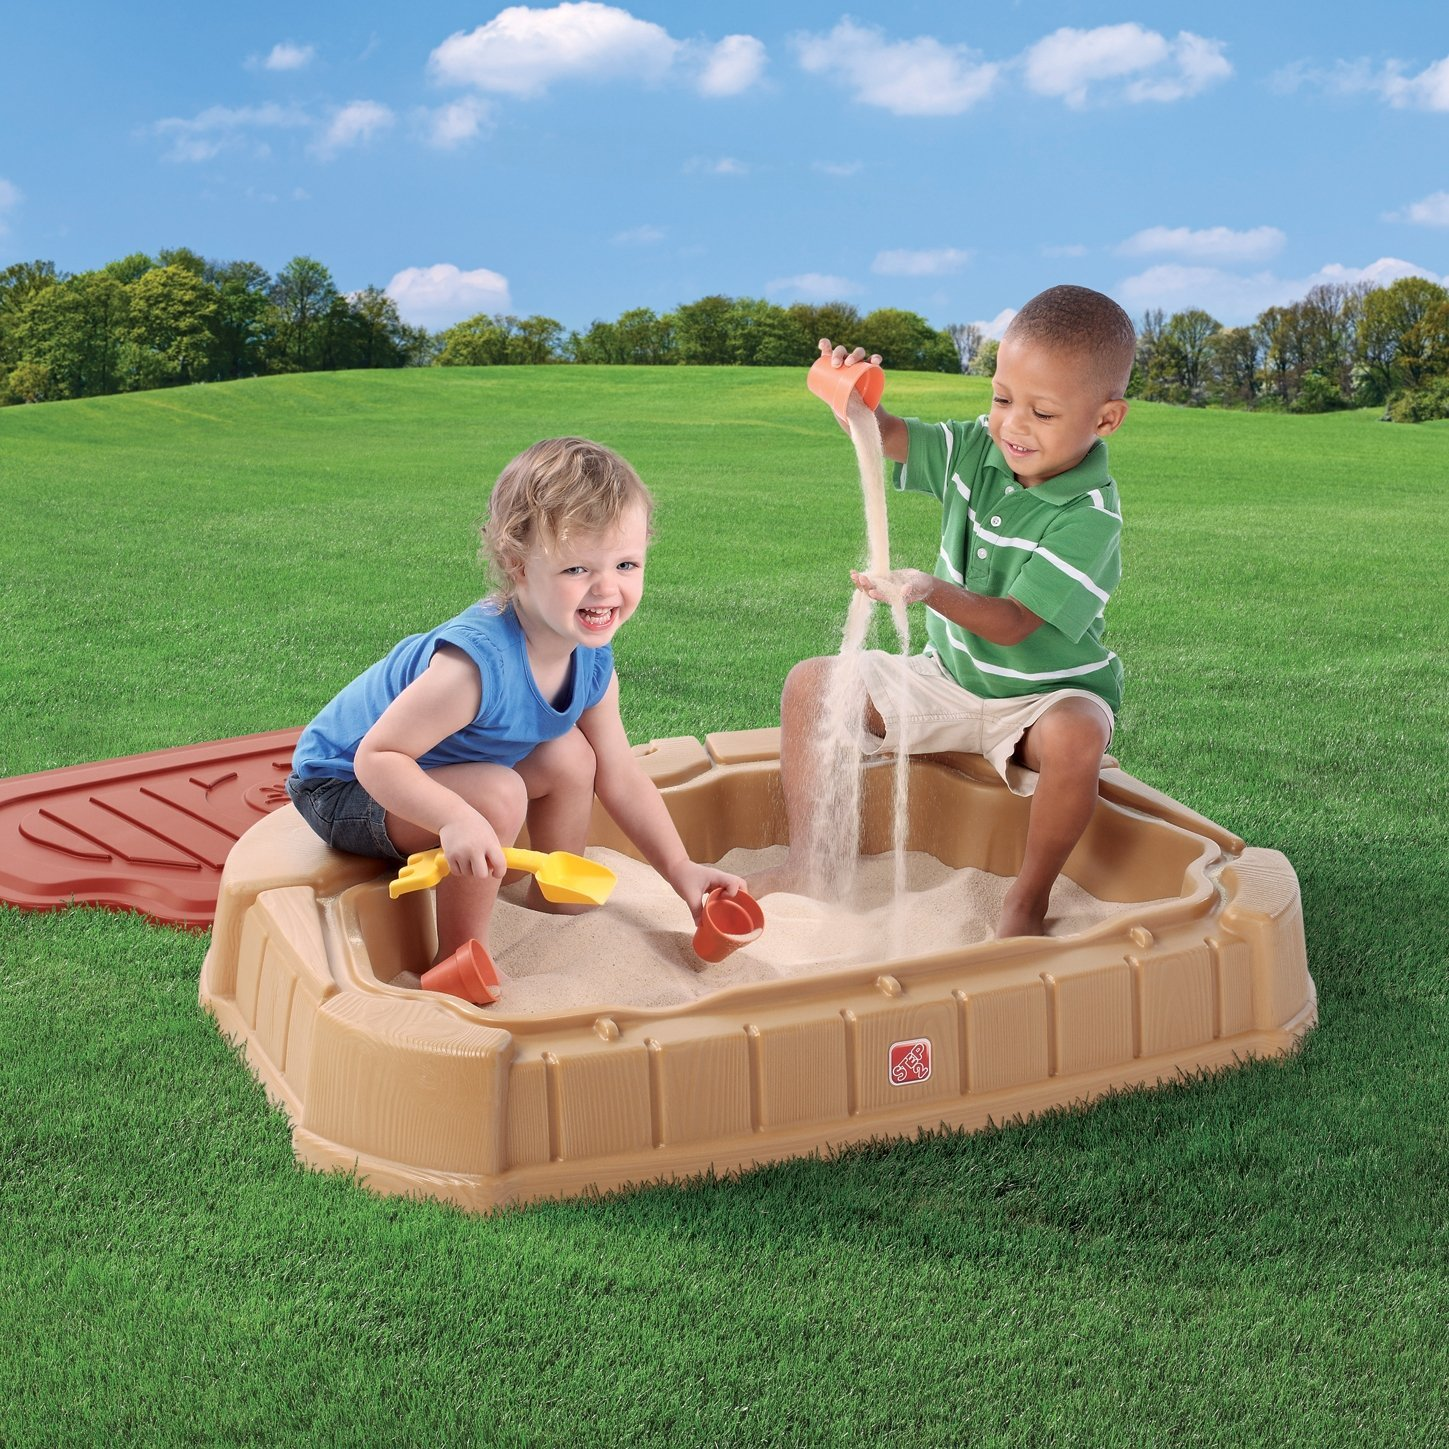 Peculiar Kids At Two Kids A Sandbox Gif Two Kids Step Ly Playful Little Dunes Sandbox A Guide To Sandbox A Sandbox Shock baby Two Kids In A Sandbox